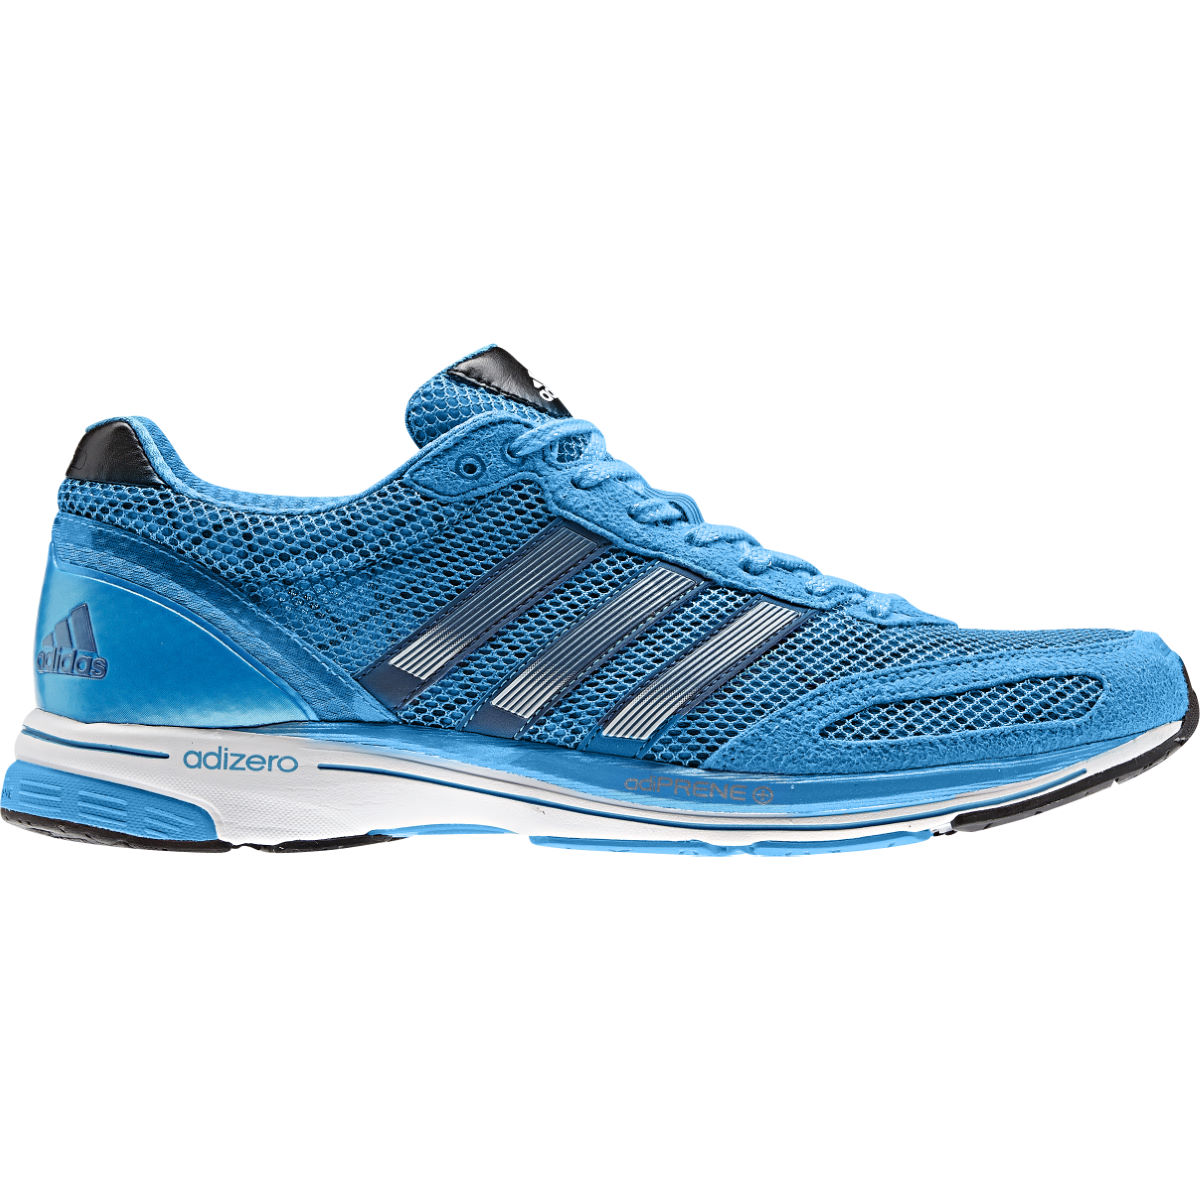 Adidas Adizero Adios 2 Shoes - SS14